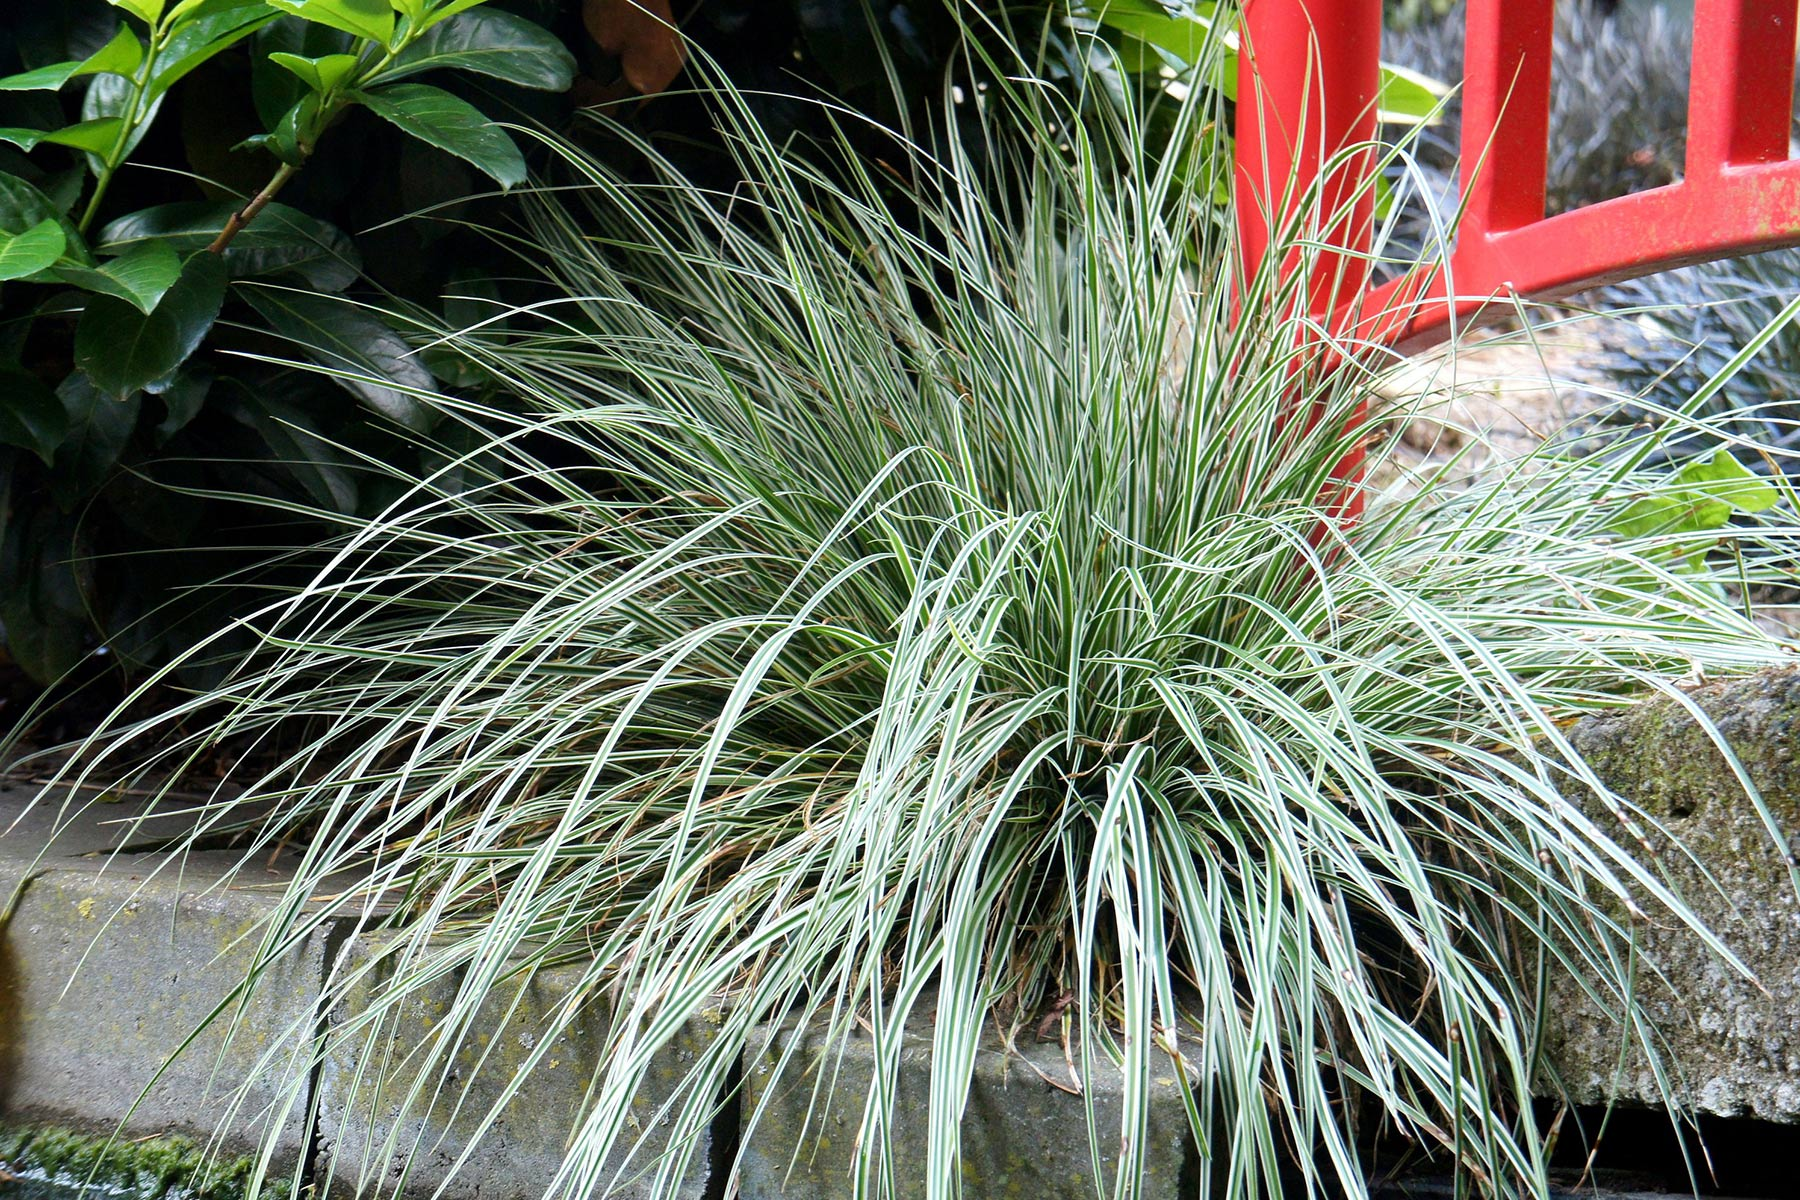 carex_everest_1800x1200.jpg